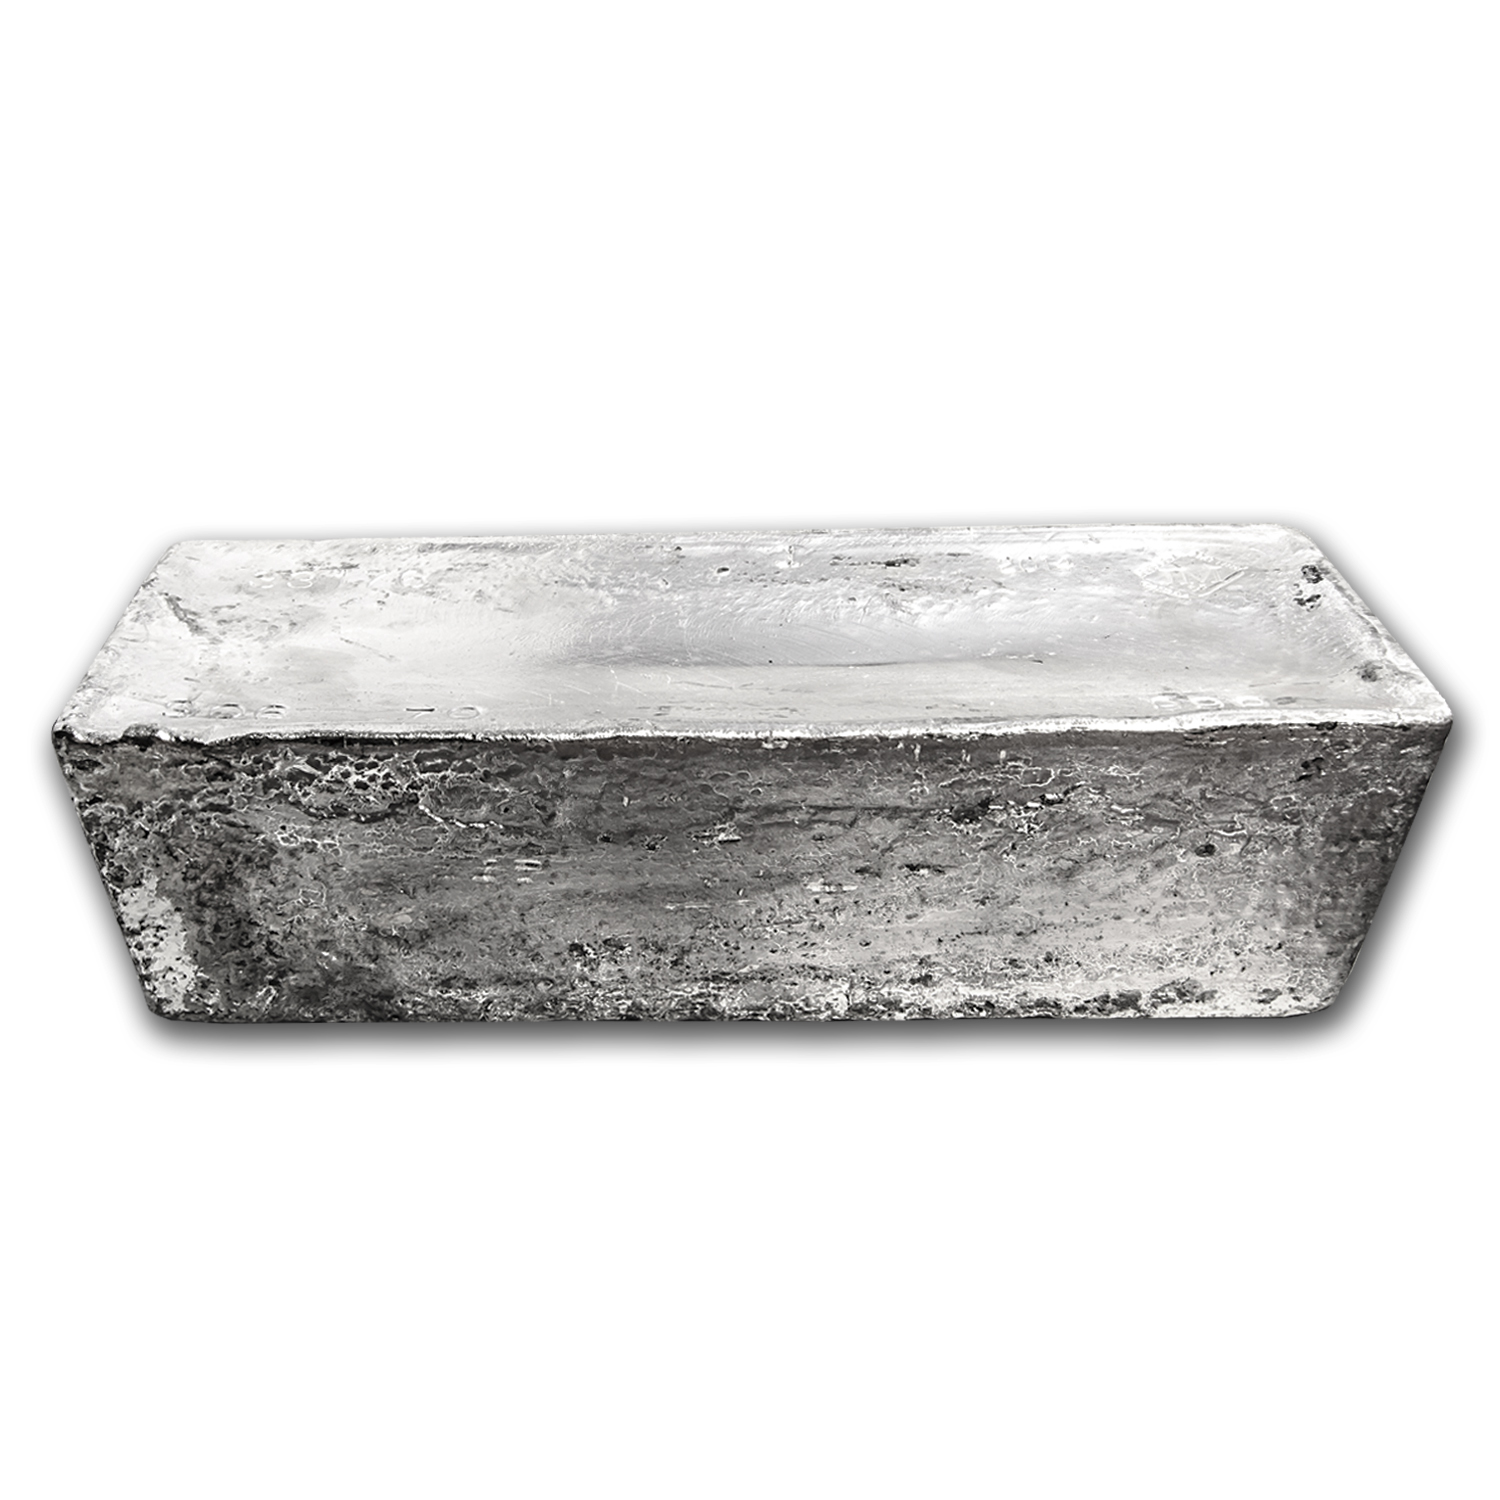 991.90 oz Silver Bar - Johnson Matthey (#33240-14)